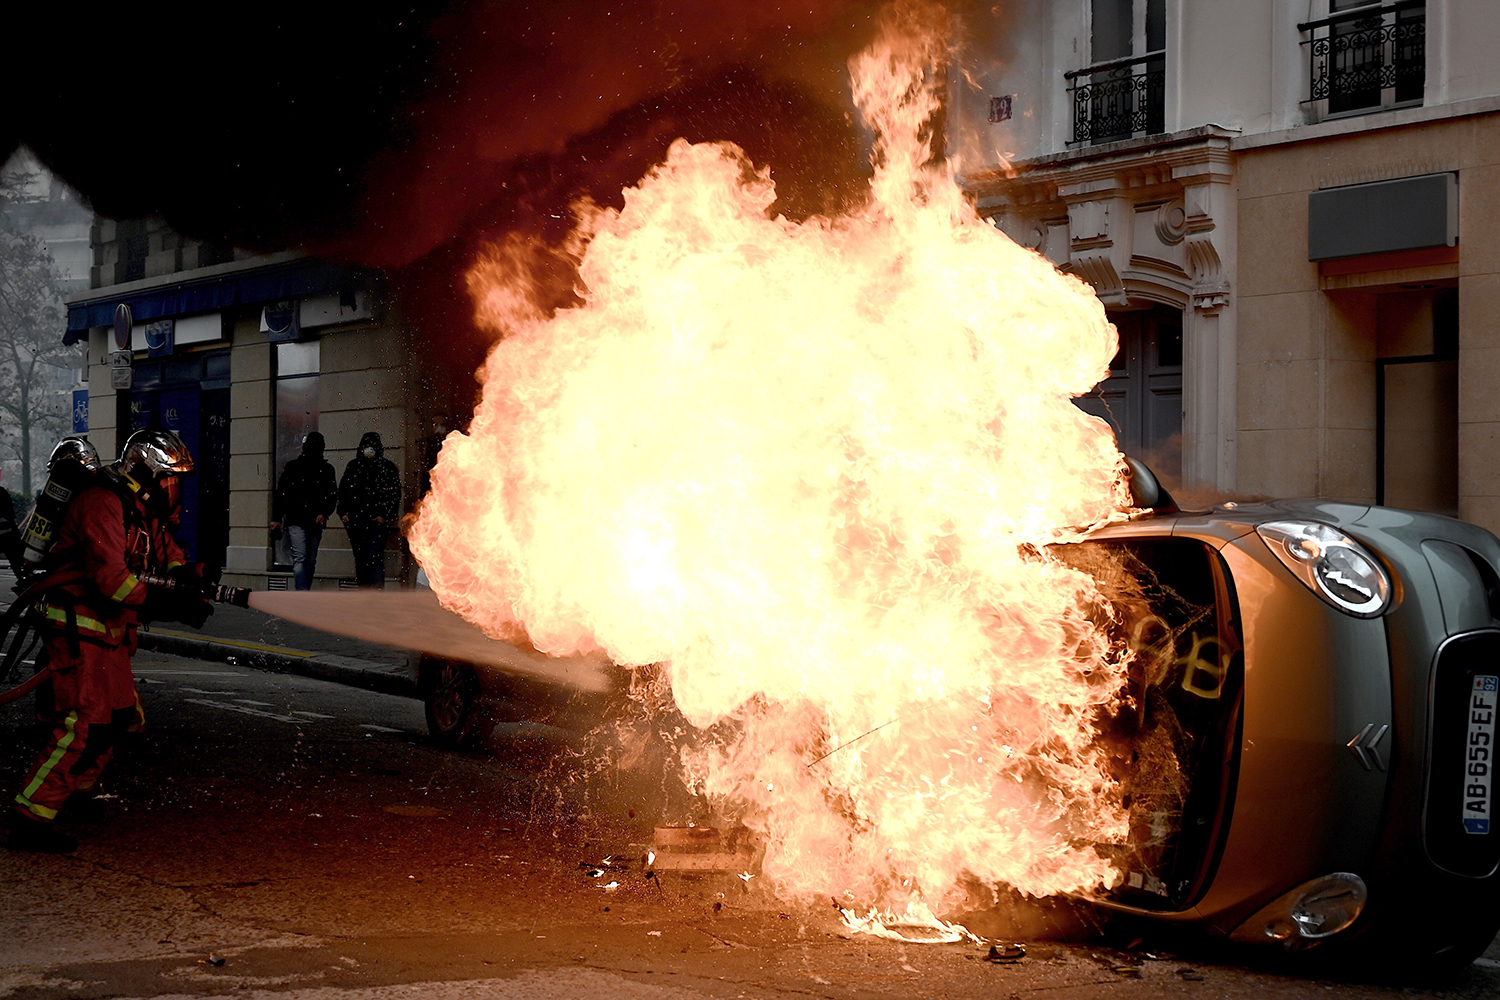 A firefighter tries to extinguish a burning car on place d'Italie in Paris on the sidelines of a demonstration of the yellow vests marking the first anniversary of the movement on Nov. 16. PHILIPPE LOPEZ/AFP via Getty Images